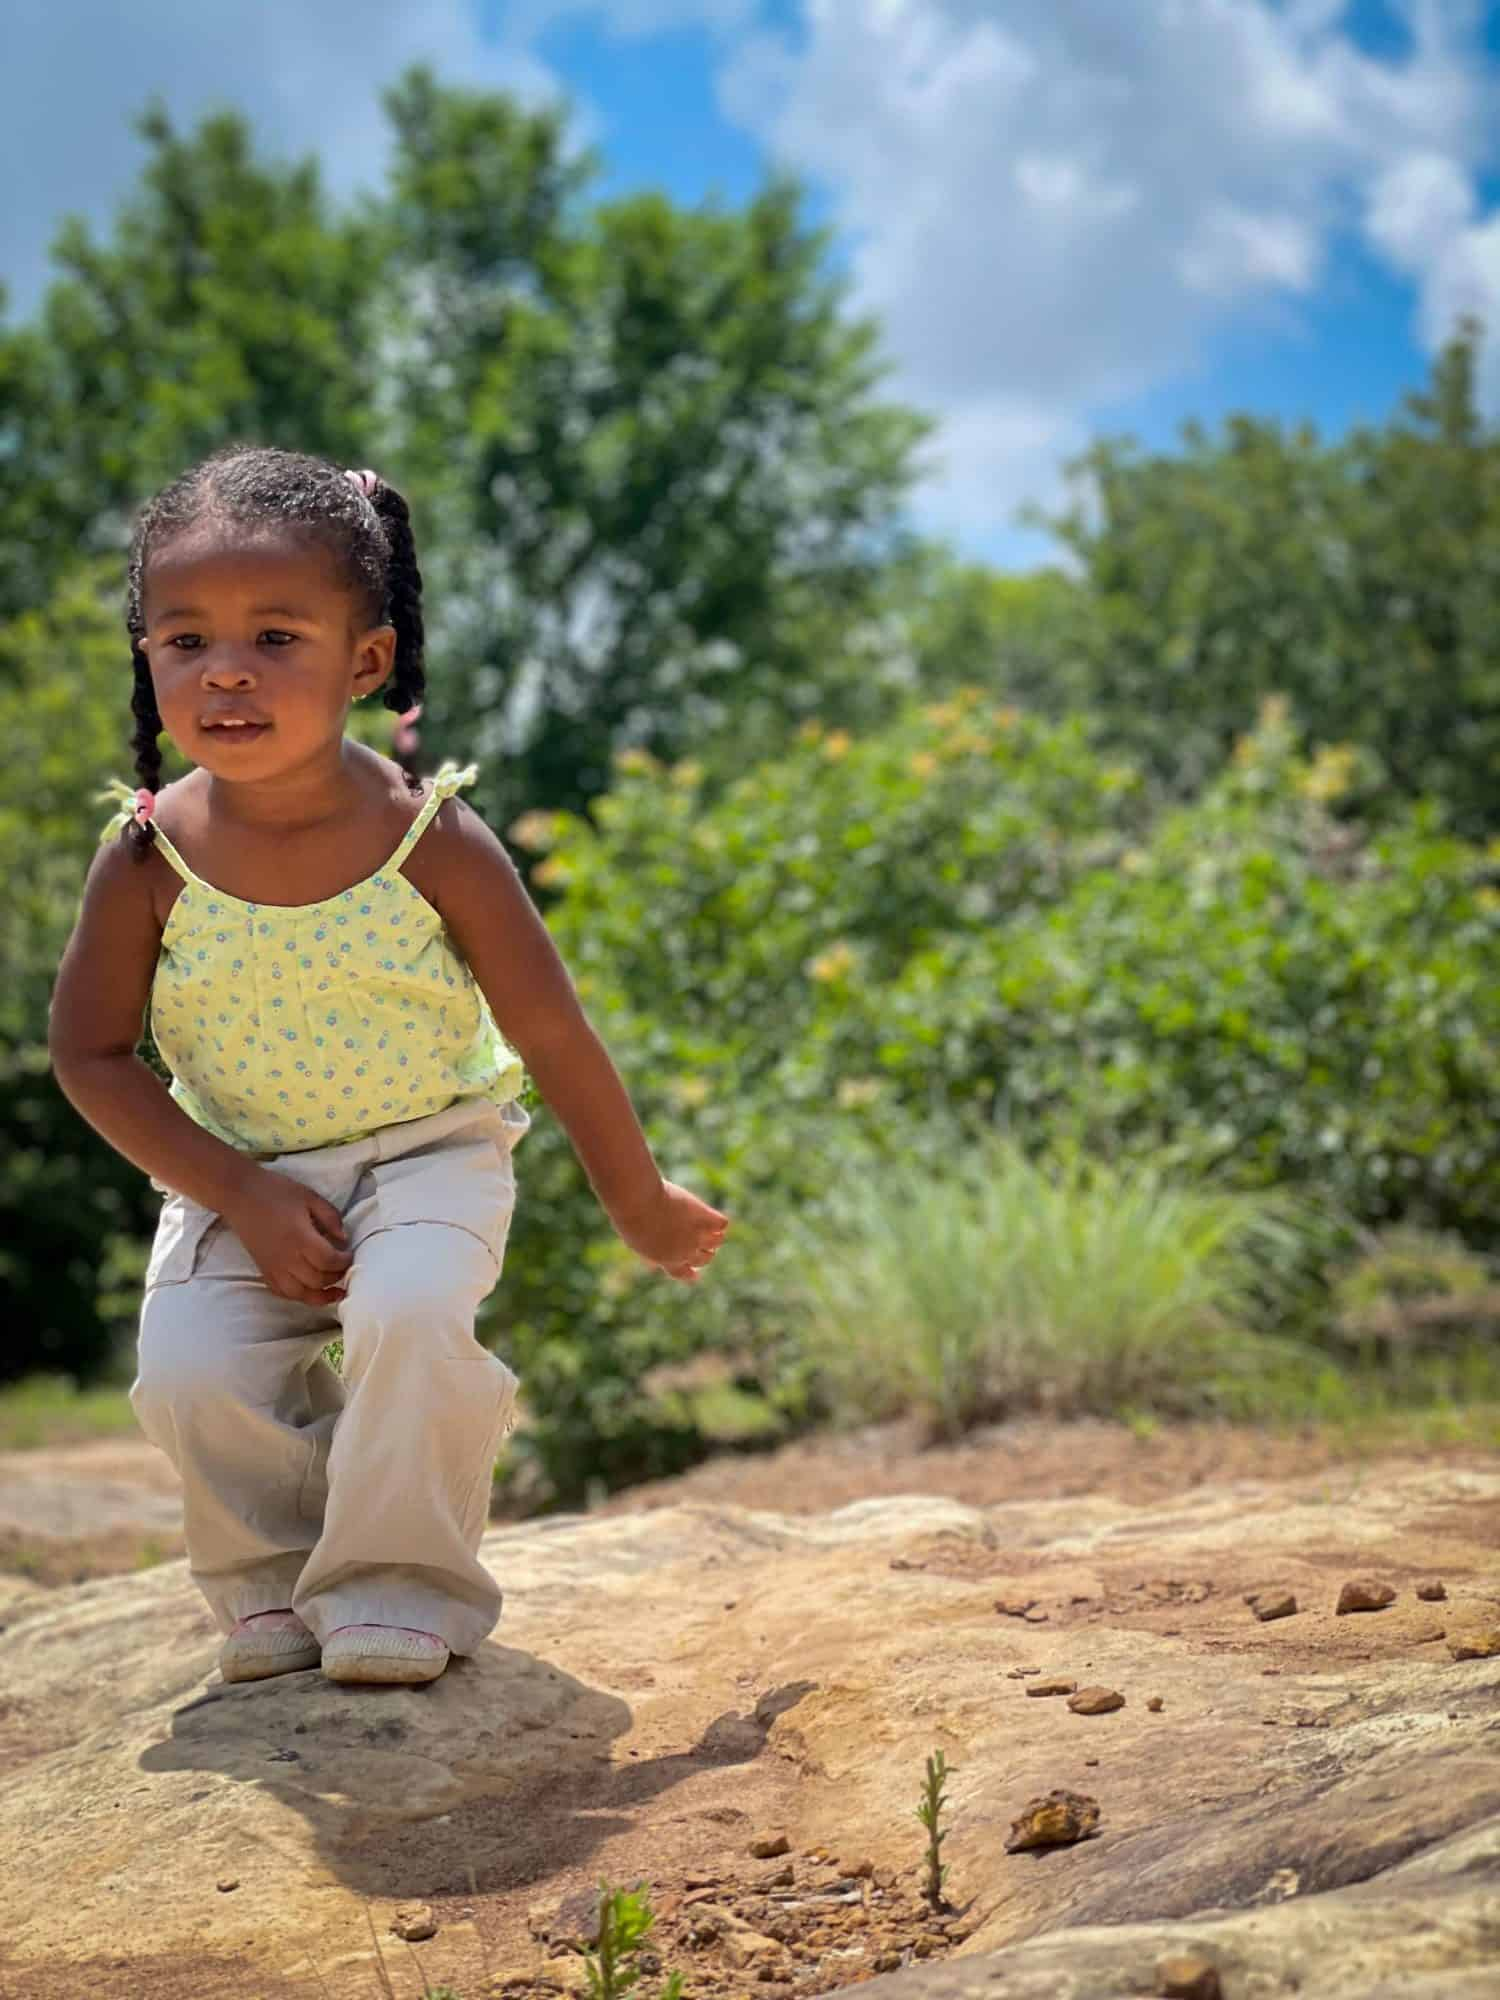 Learning About Nature with Kids - exploring nature around you